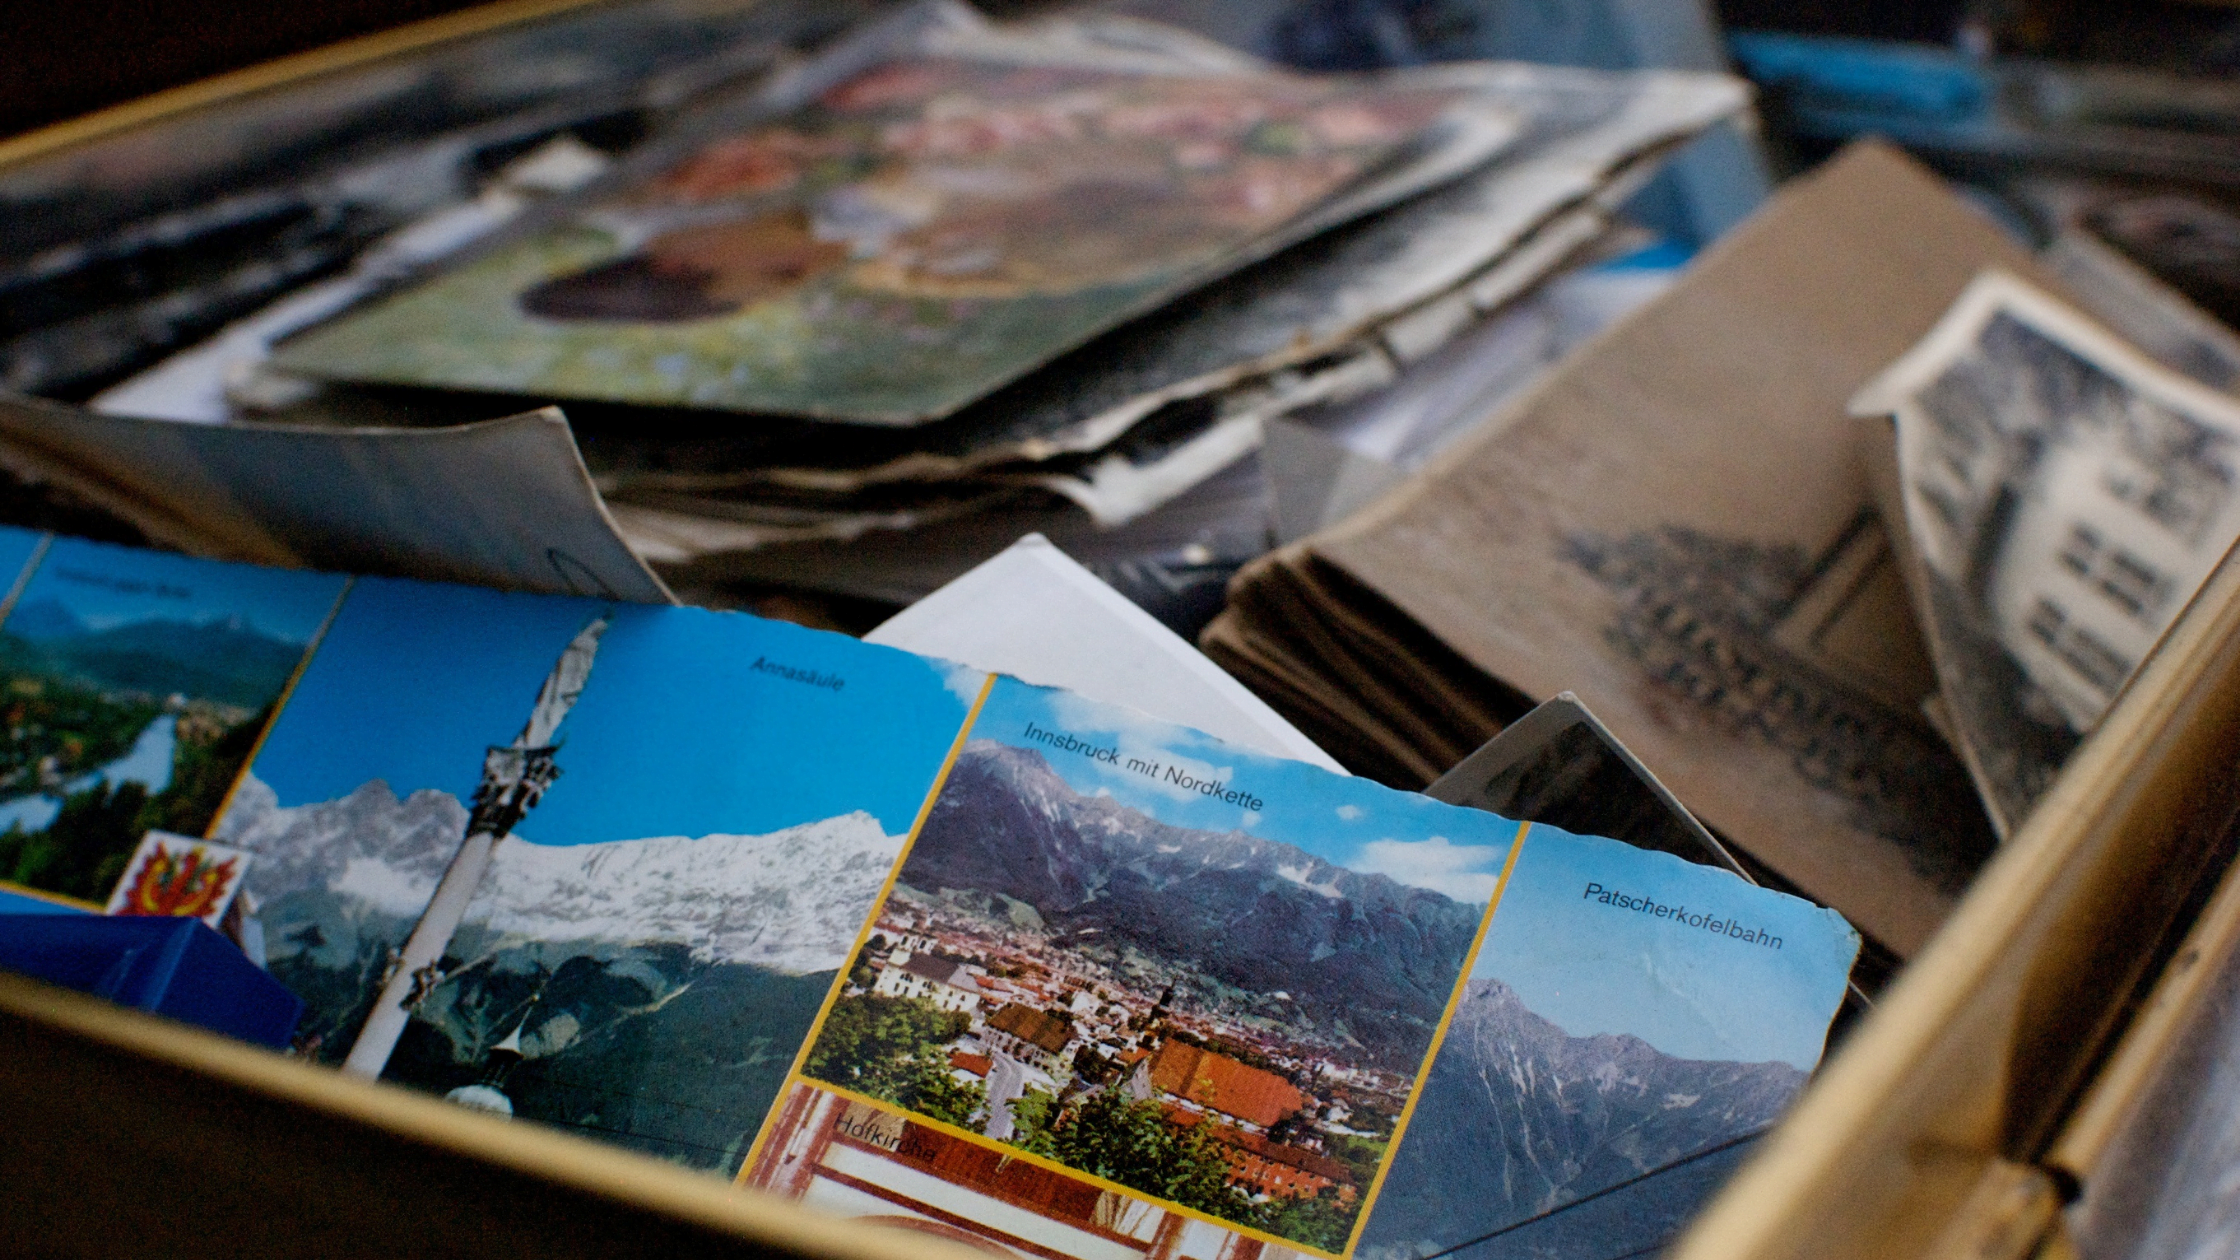 Transfer Your Photo Collections to Your New Home Before You Move